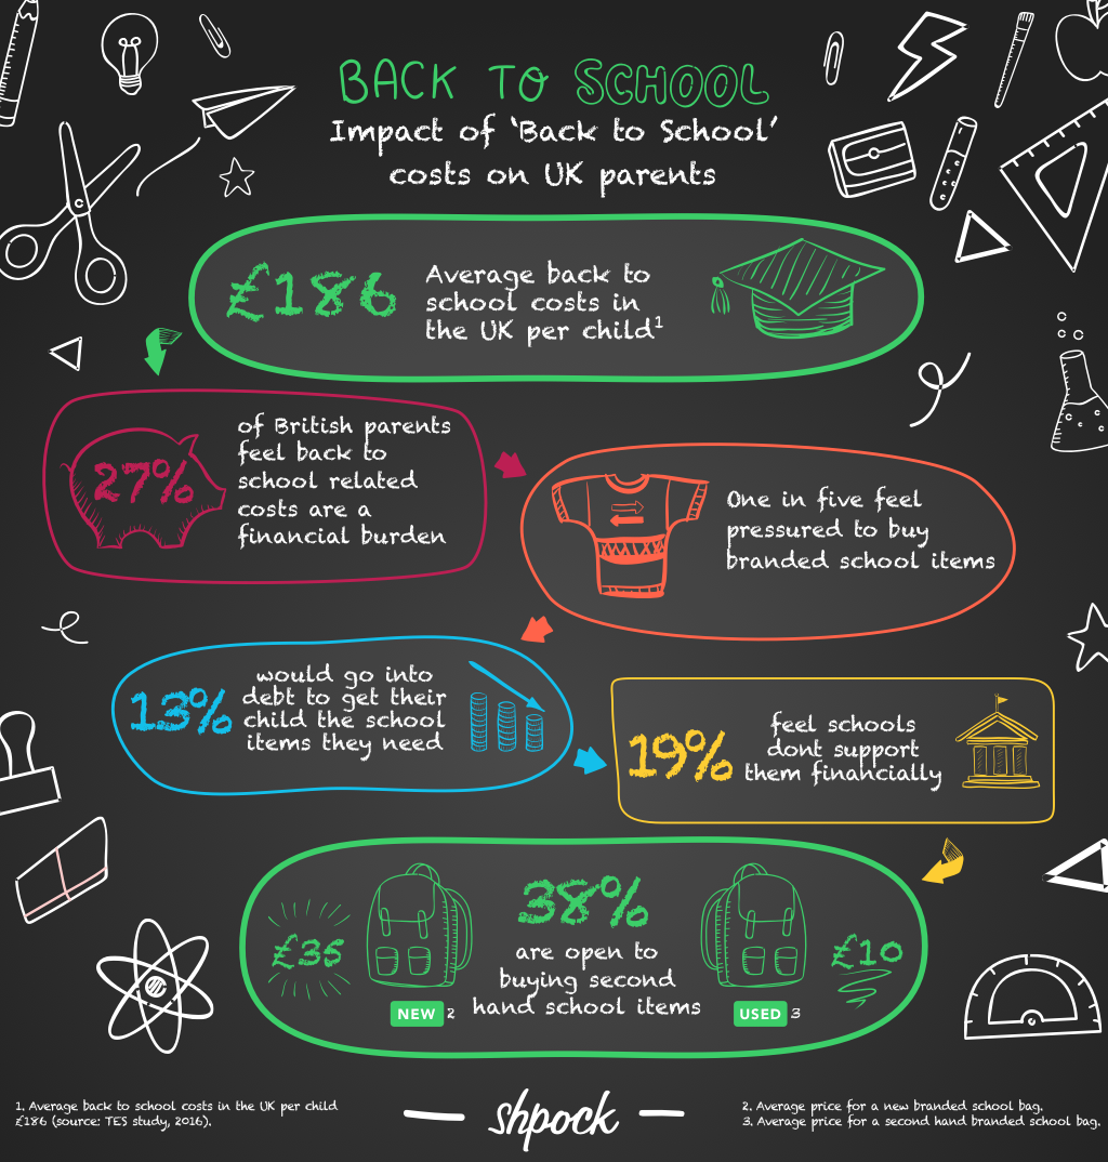 Study: 'Back to school' costs are a burden for 27% of British parents